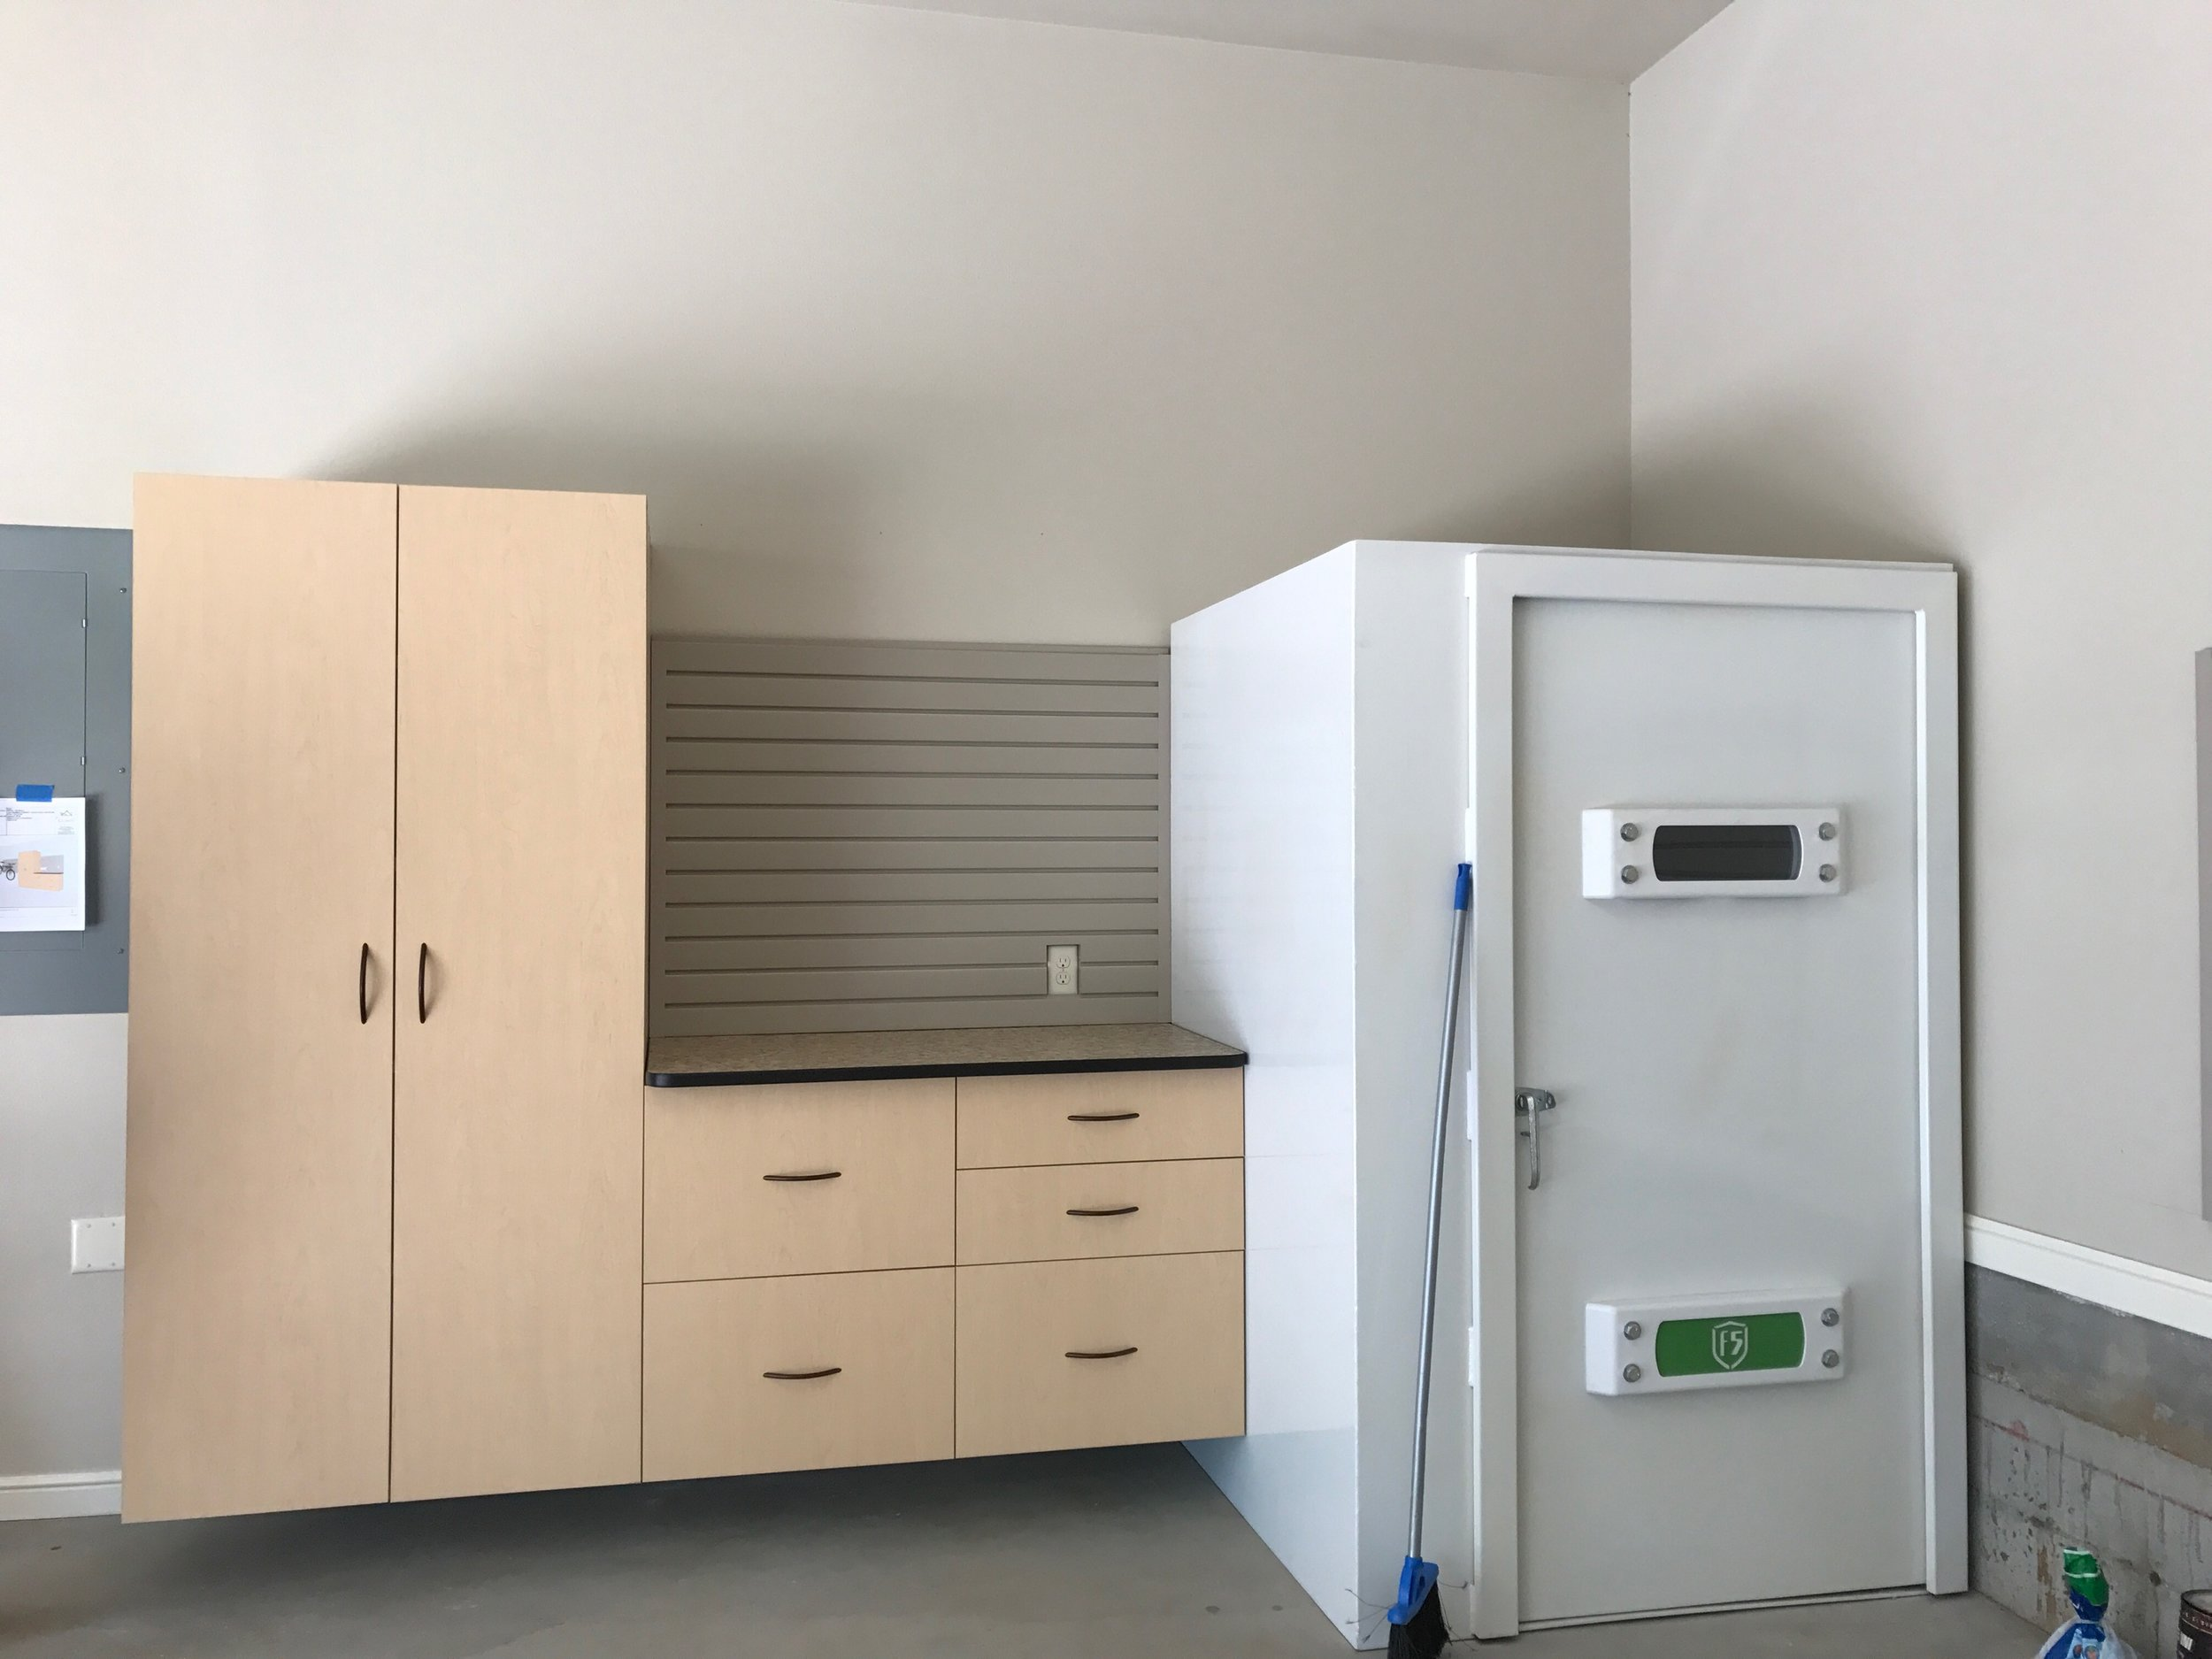 Great garage cabinets maximize storage with limited space. Pictured: Maple garage cabinets and slatwall mounted between a storm shelter and a breaker box.  Call Closets of Tulsa  today for a FREE consultation and 3-D garage design:  918.609.0214